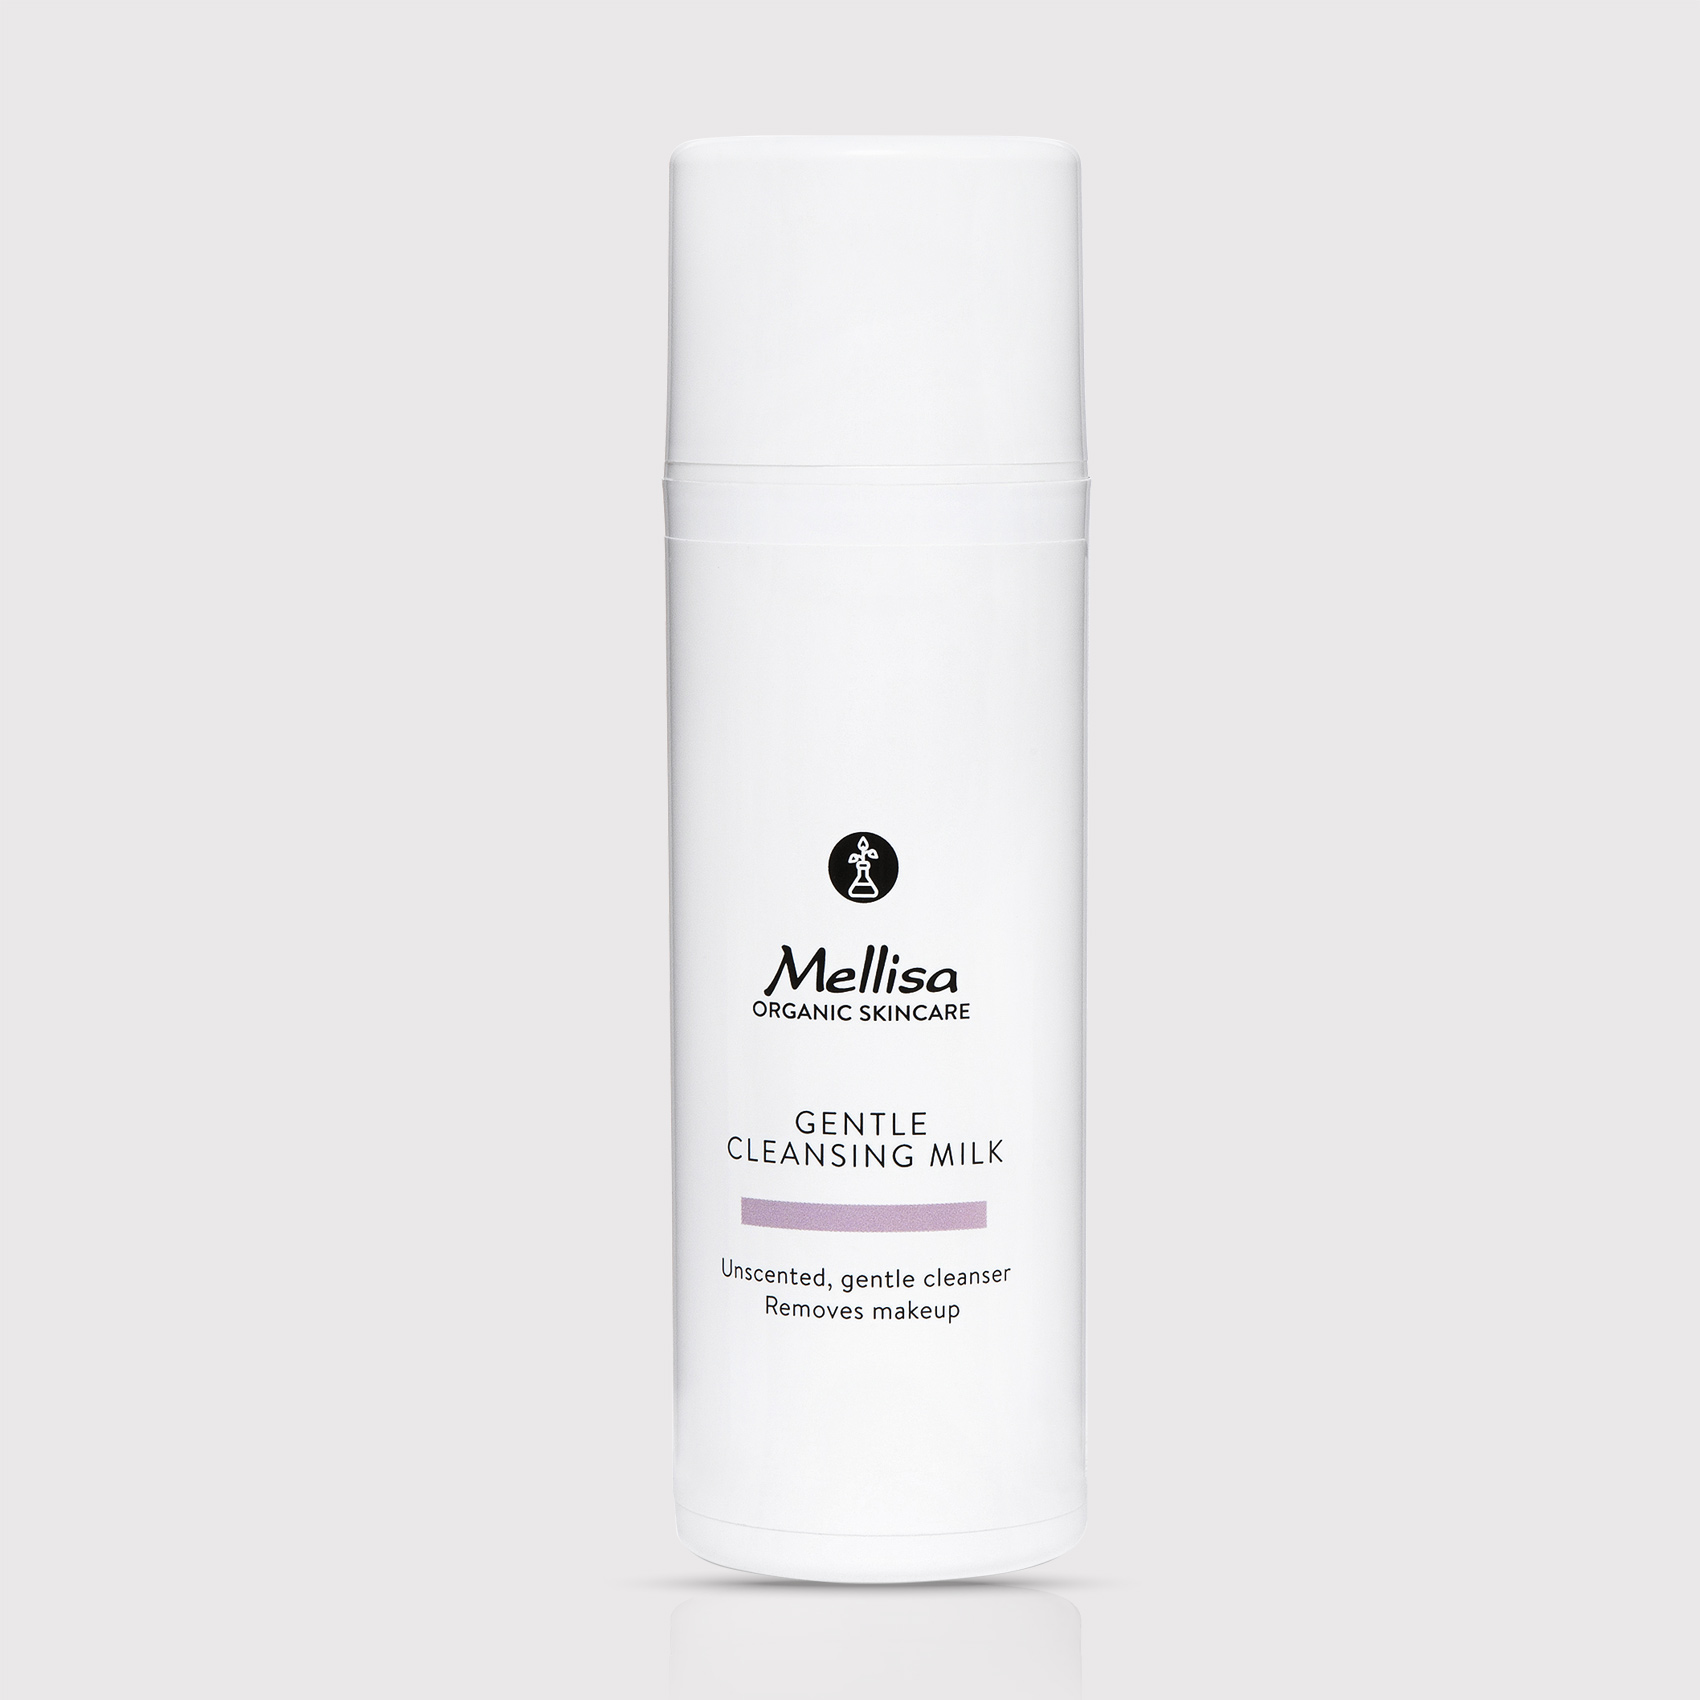 Mellisa Gentle Cleansing Milk